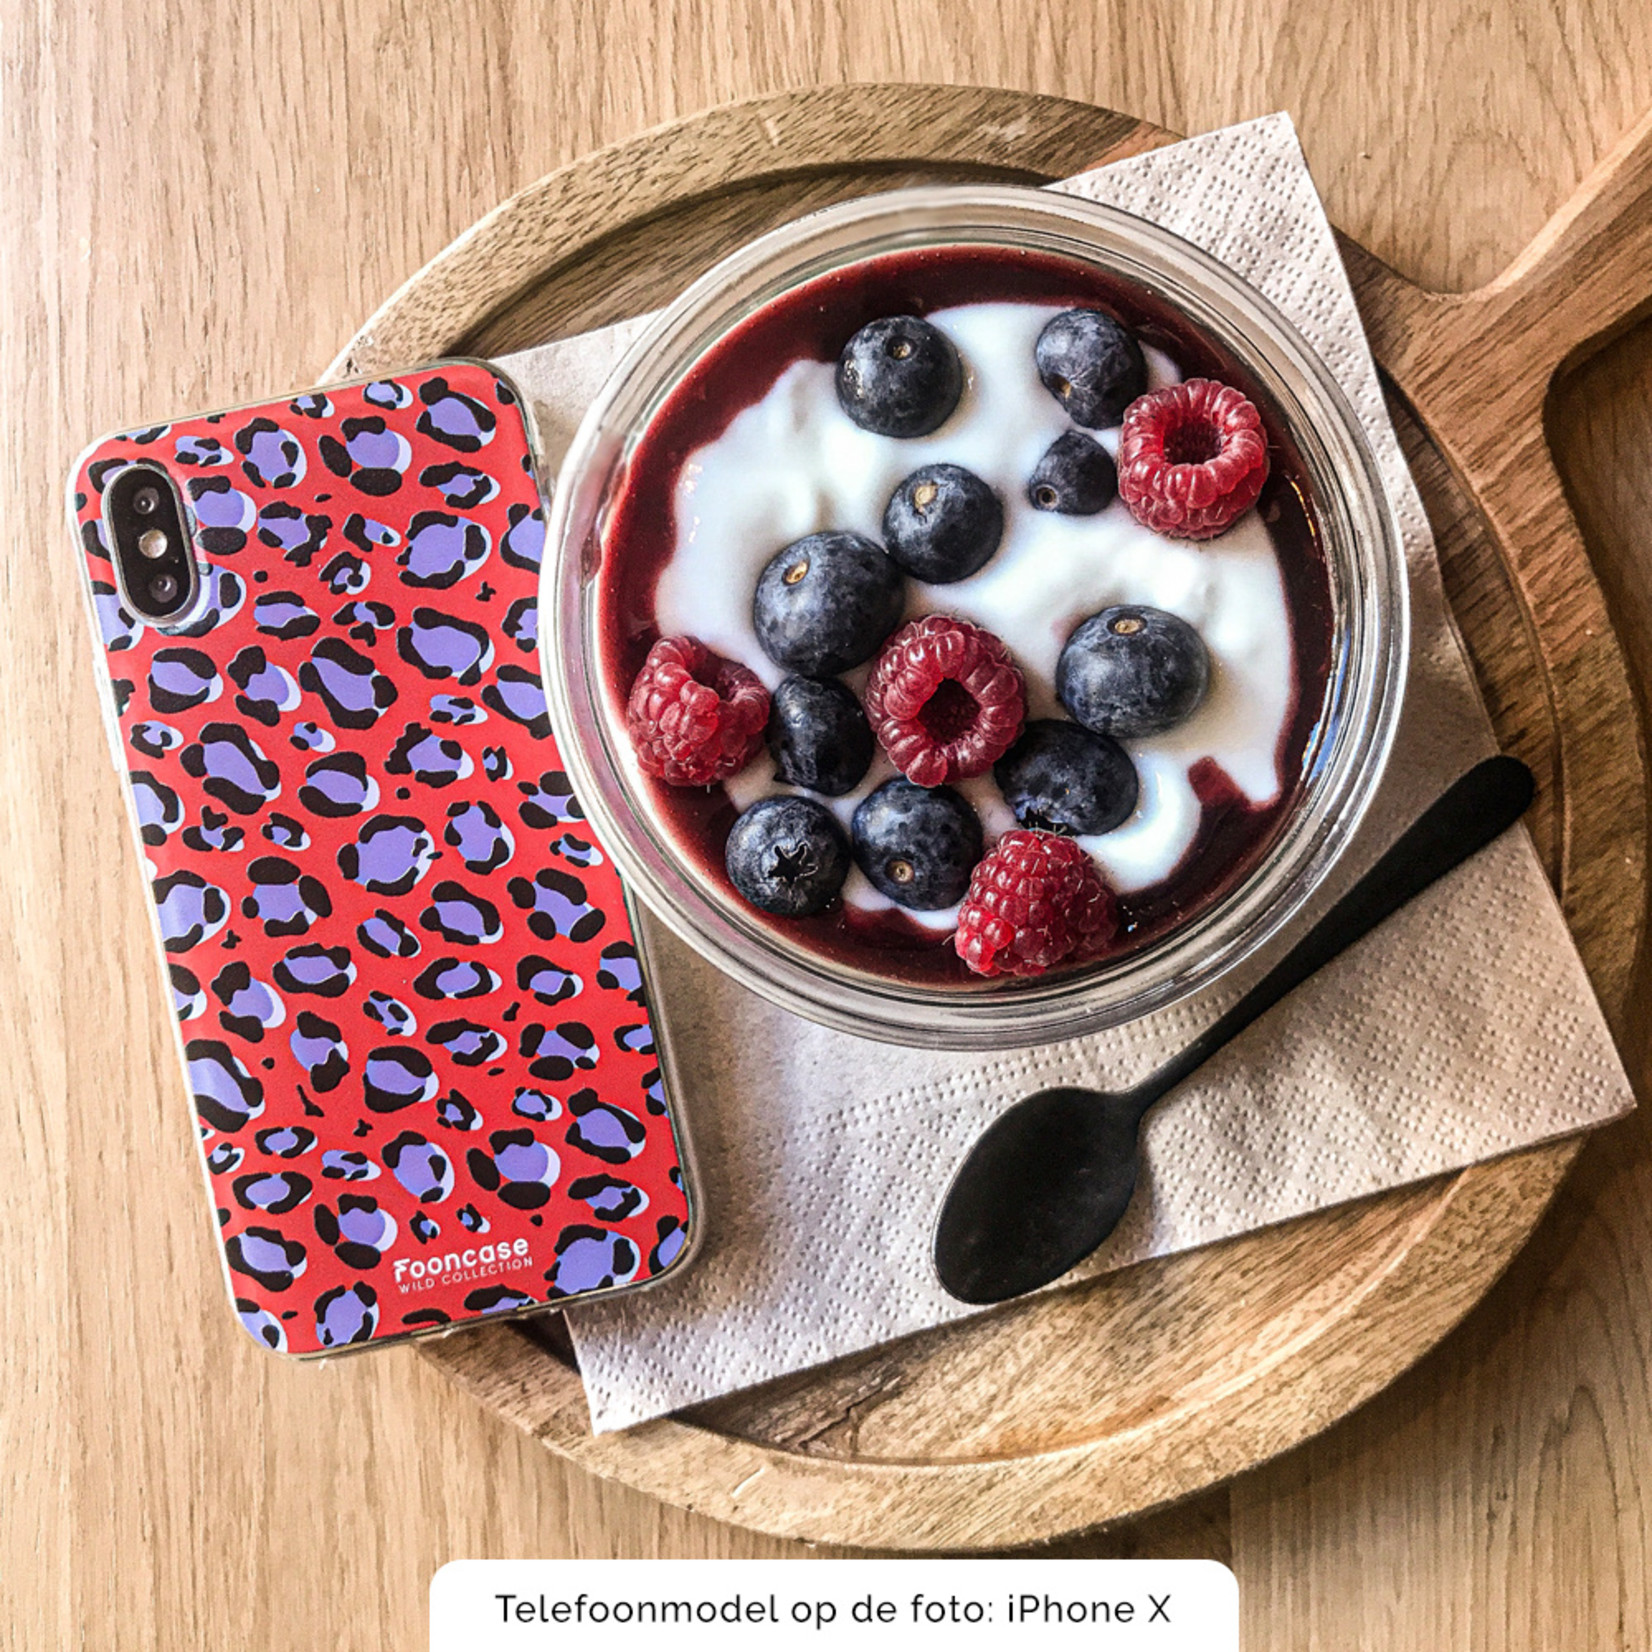 FOONCASE Samsung Galaxy S20 Ultra hoesje TPU Soft Case - Back Cover - WILD COLLECTION / Luipaard / Leopard print / Rood